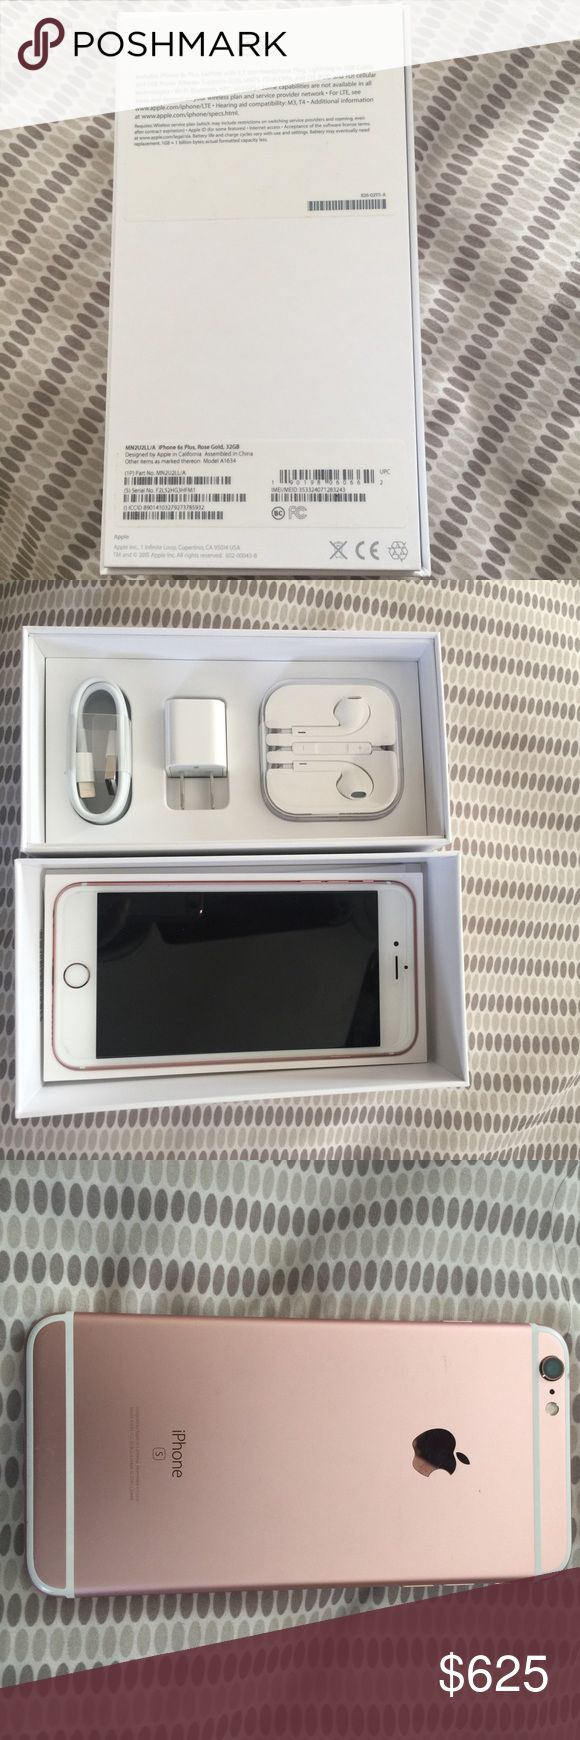 iPhone 6s Plus iPhone 6 s plus rose gold 32 gb comes with cord, adapter and earbuds. Box included. This phone is in excellent condition. Price firm. Att provider not unlocked but you can unlock it yourself. Not contracts and phone is paid in full. Comes from a smoke and pet free home. Just bought it in October. Other